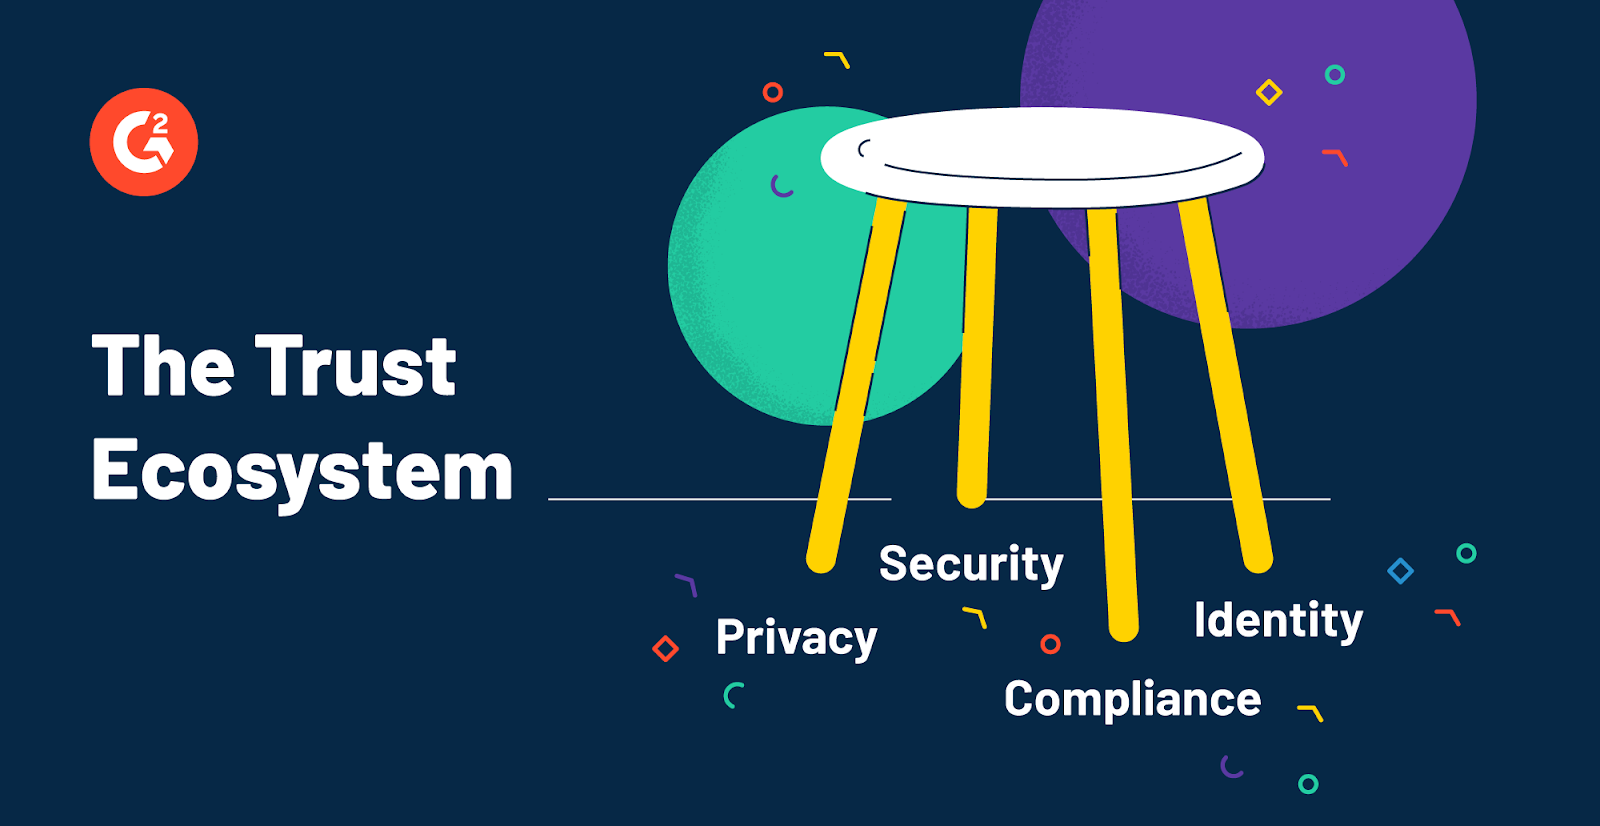 four-legged stool depicting security, privacy, compliance and identity which together make the trust ecosystem more secure